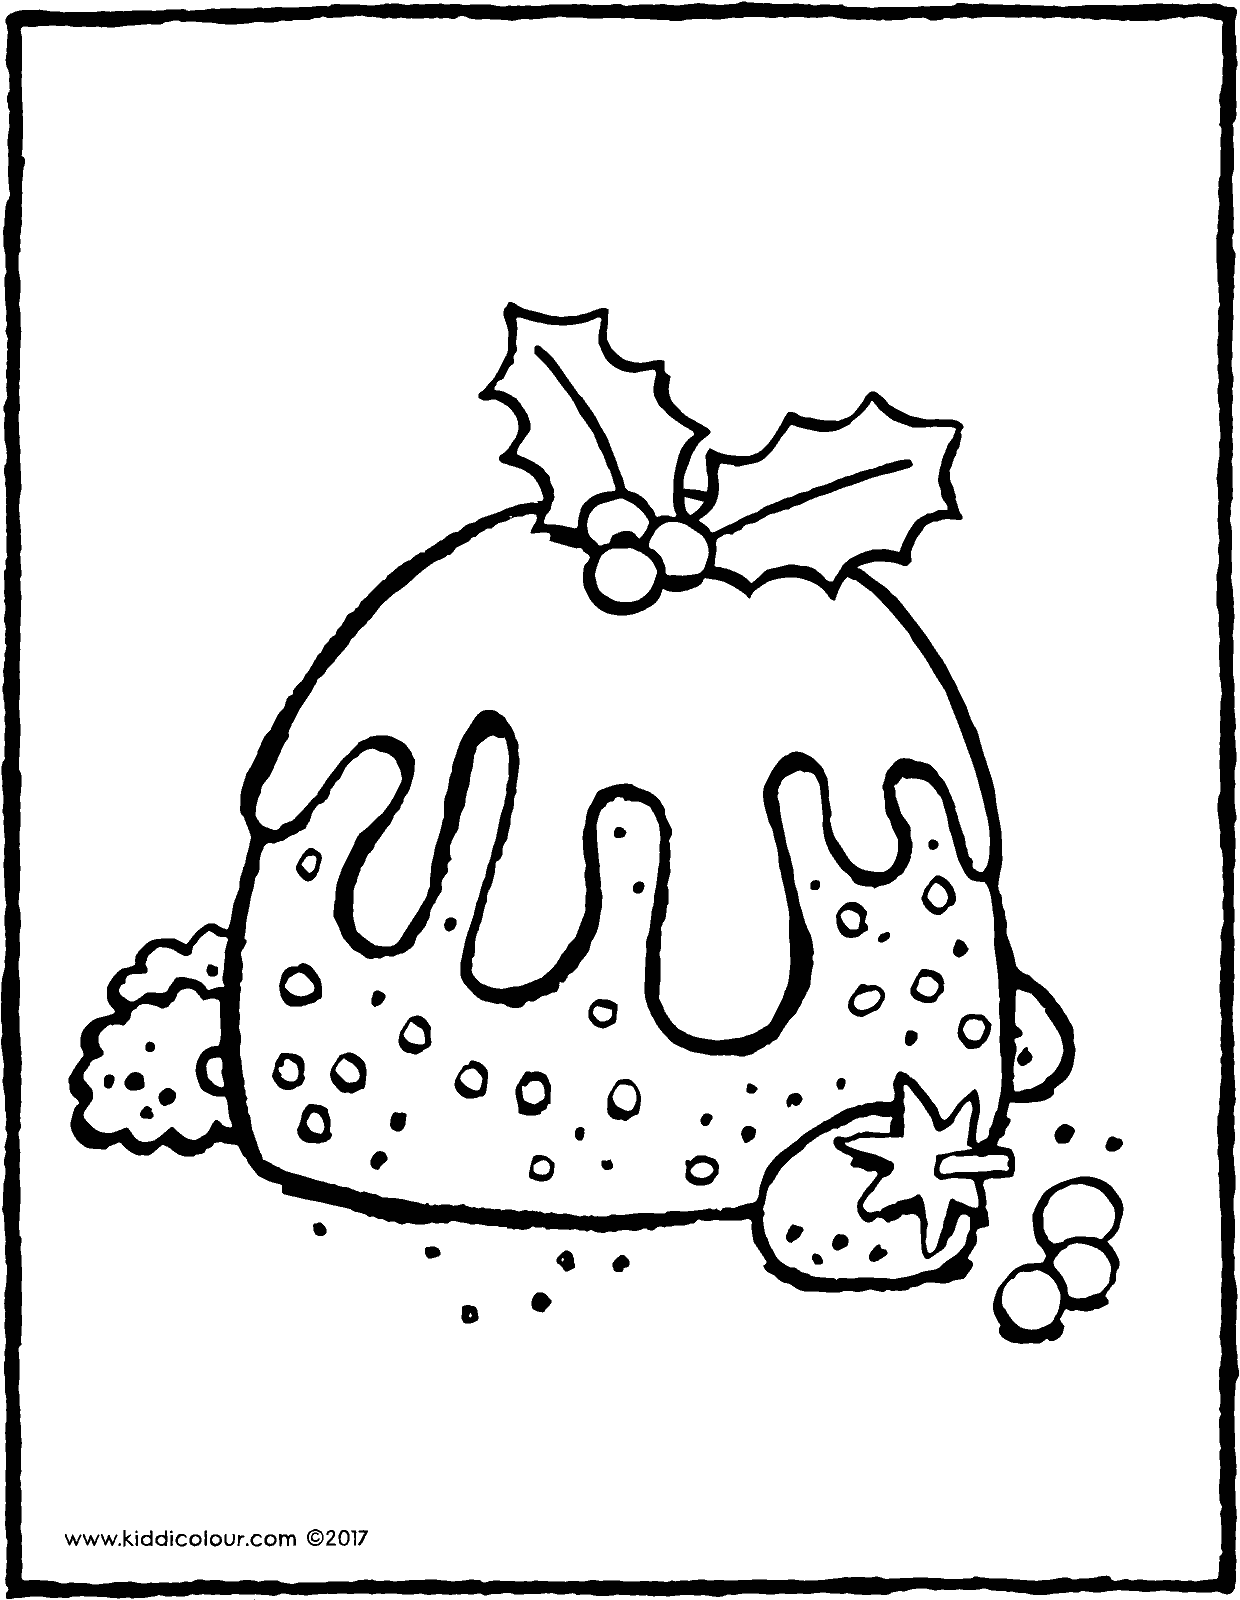 Christmas pudding colouring page page drawing picture 01V